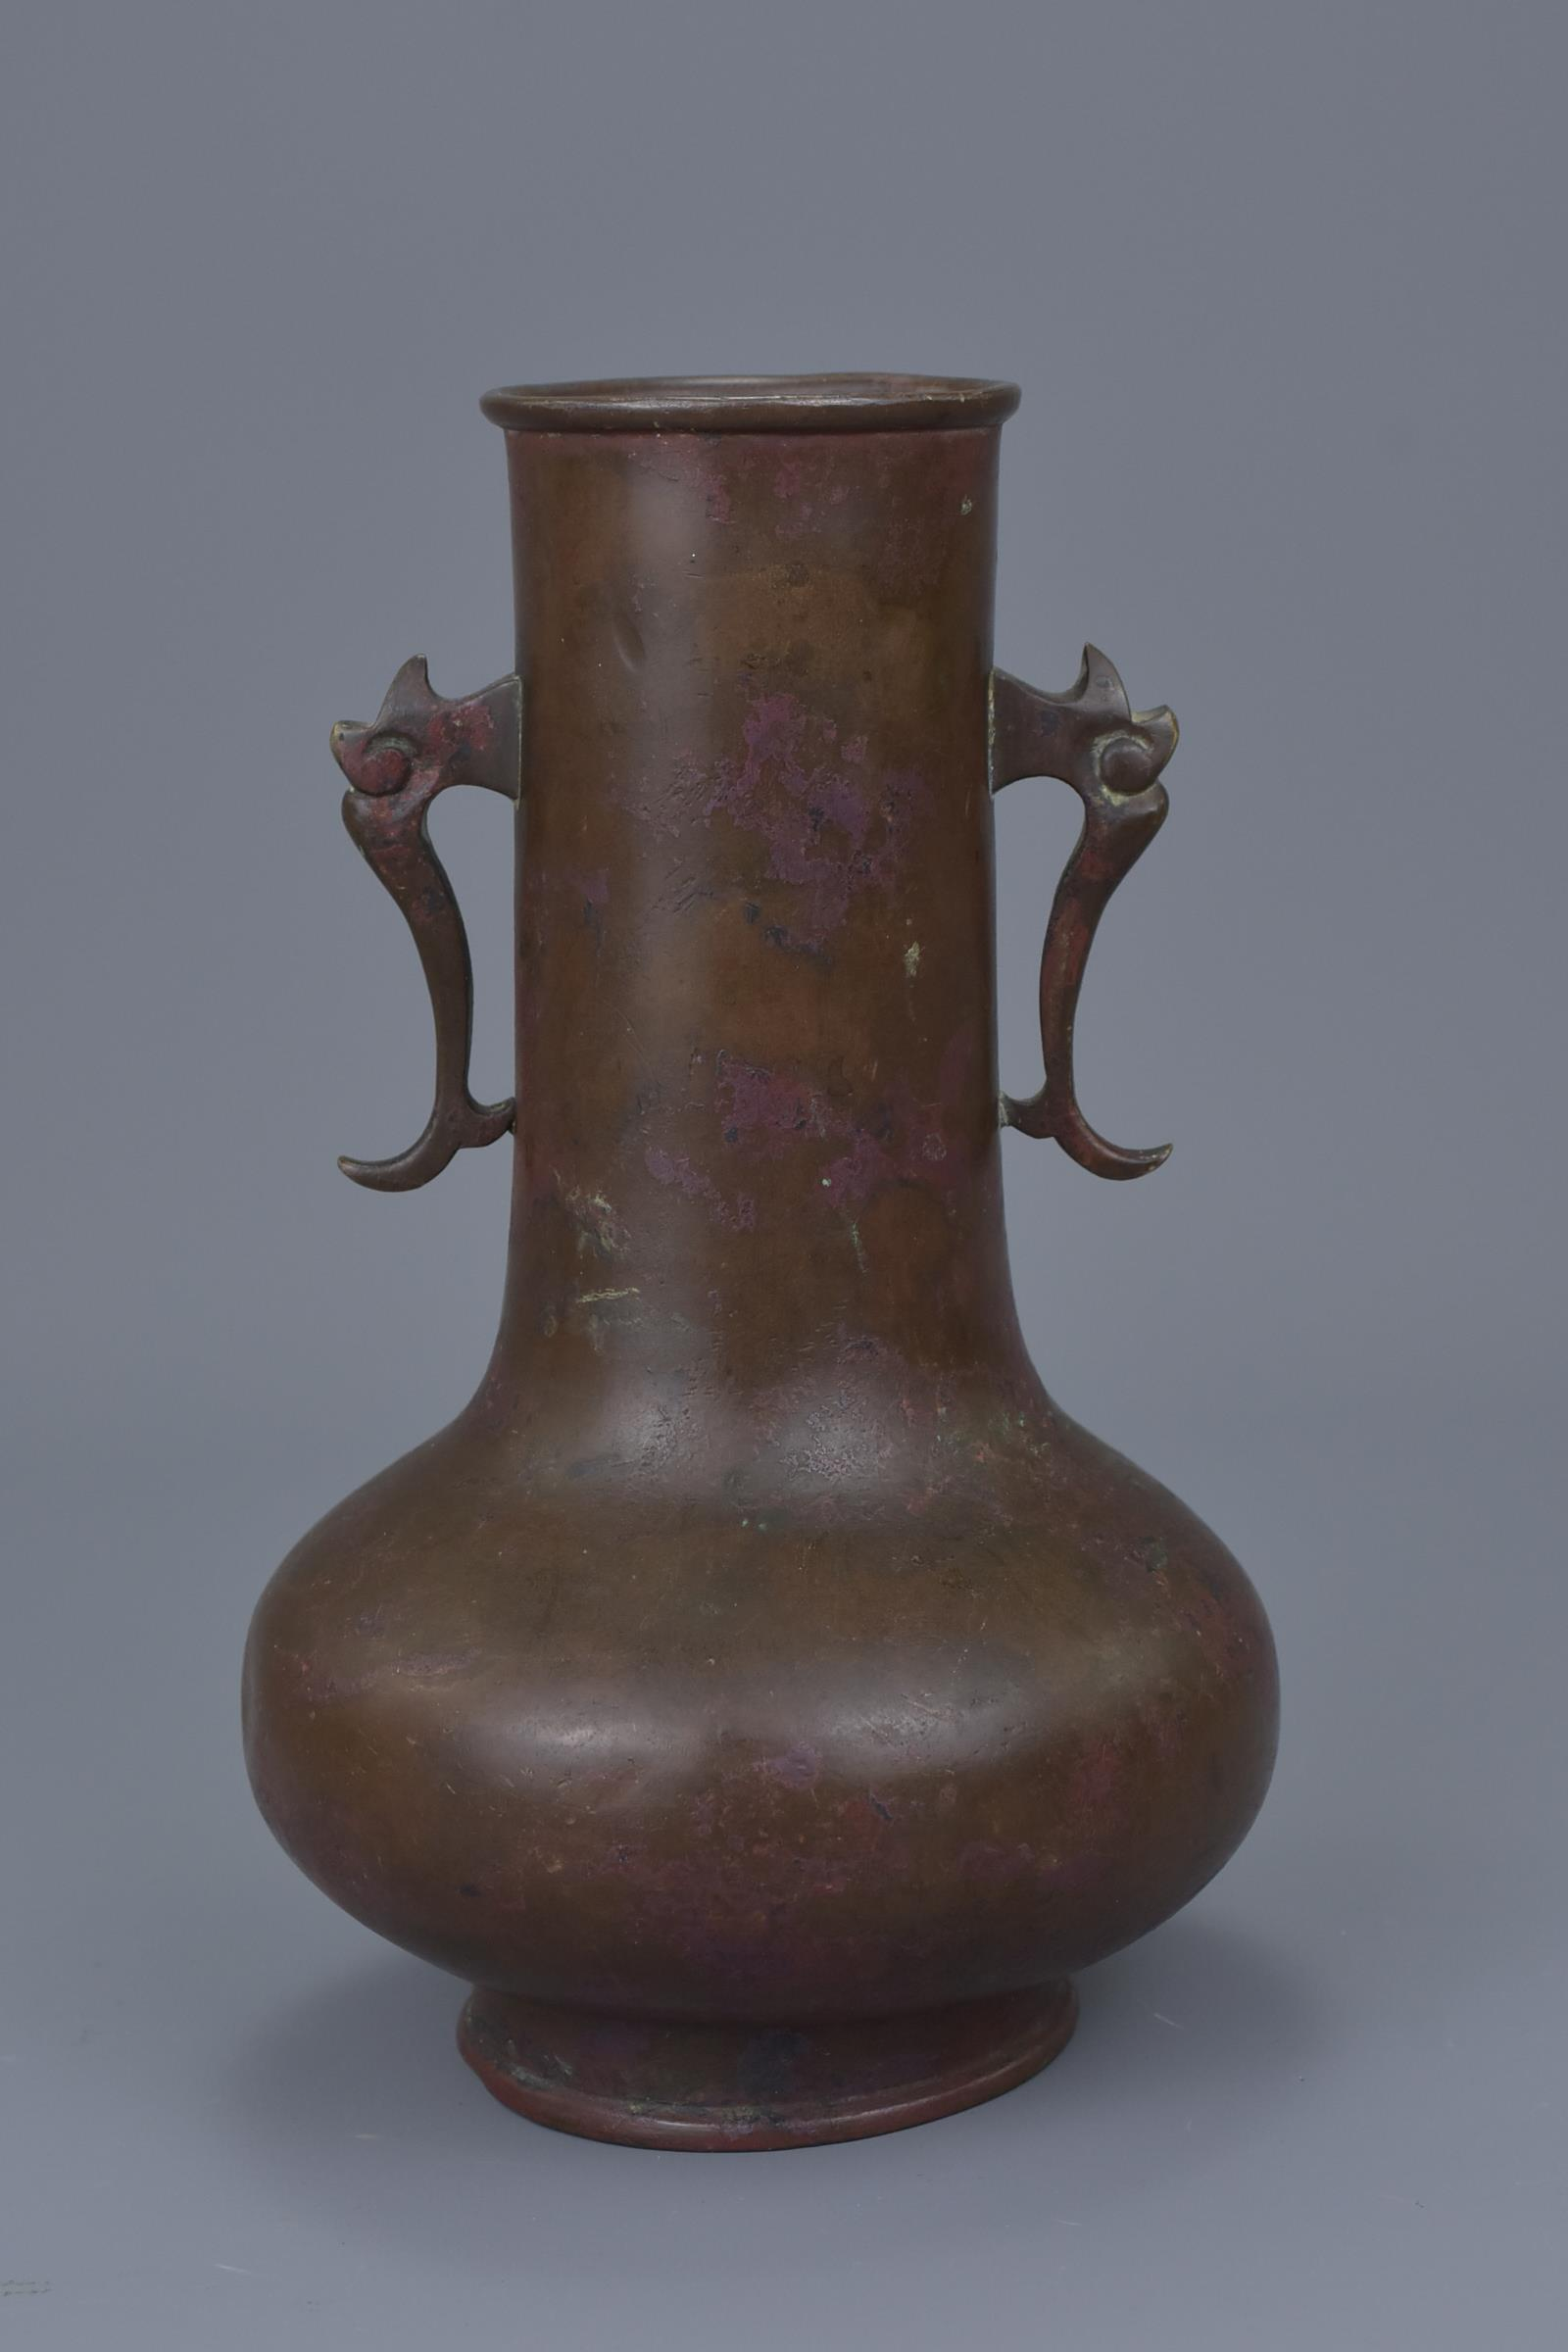 Lot 40 - A Chinese 18th C. or earlier bronze vase